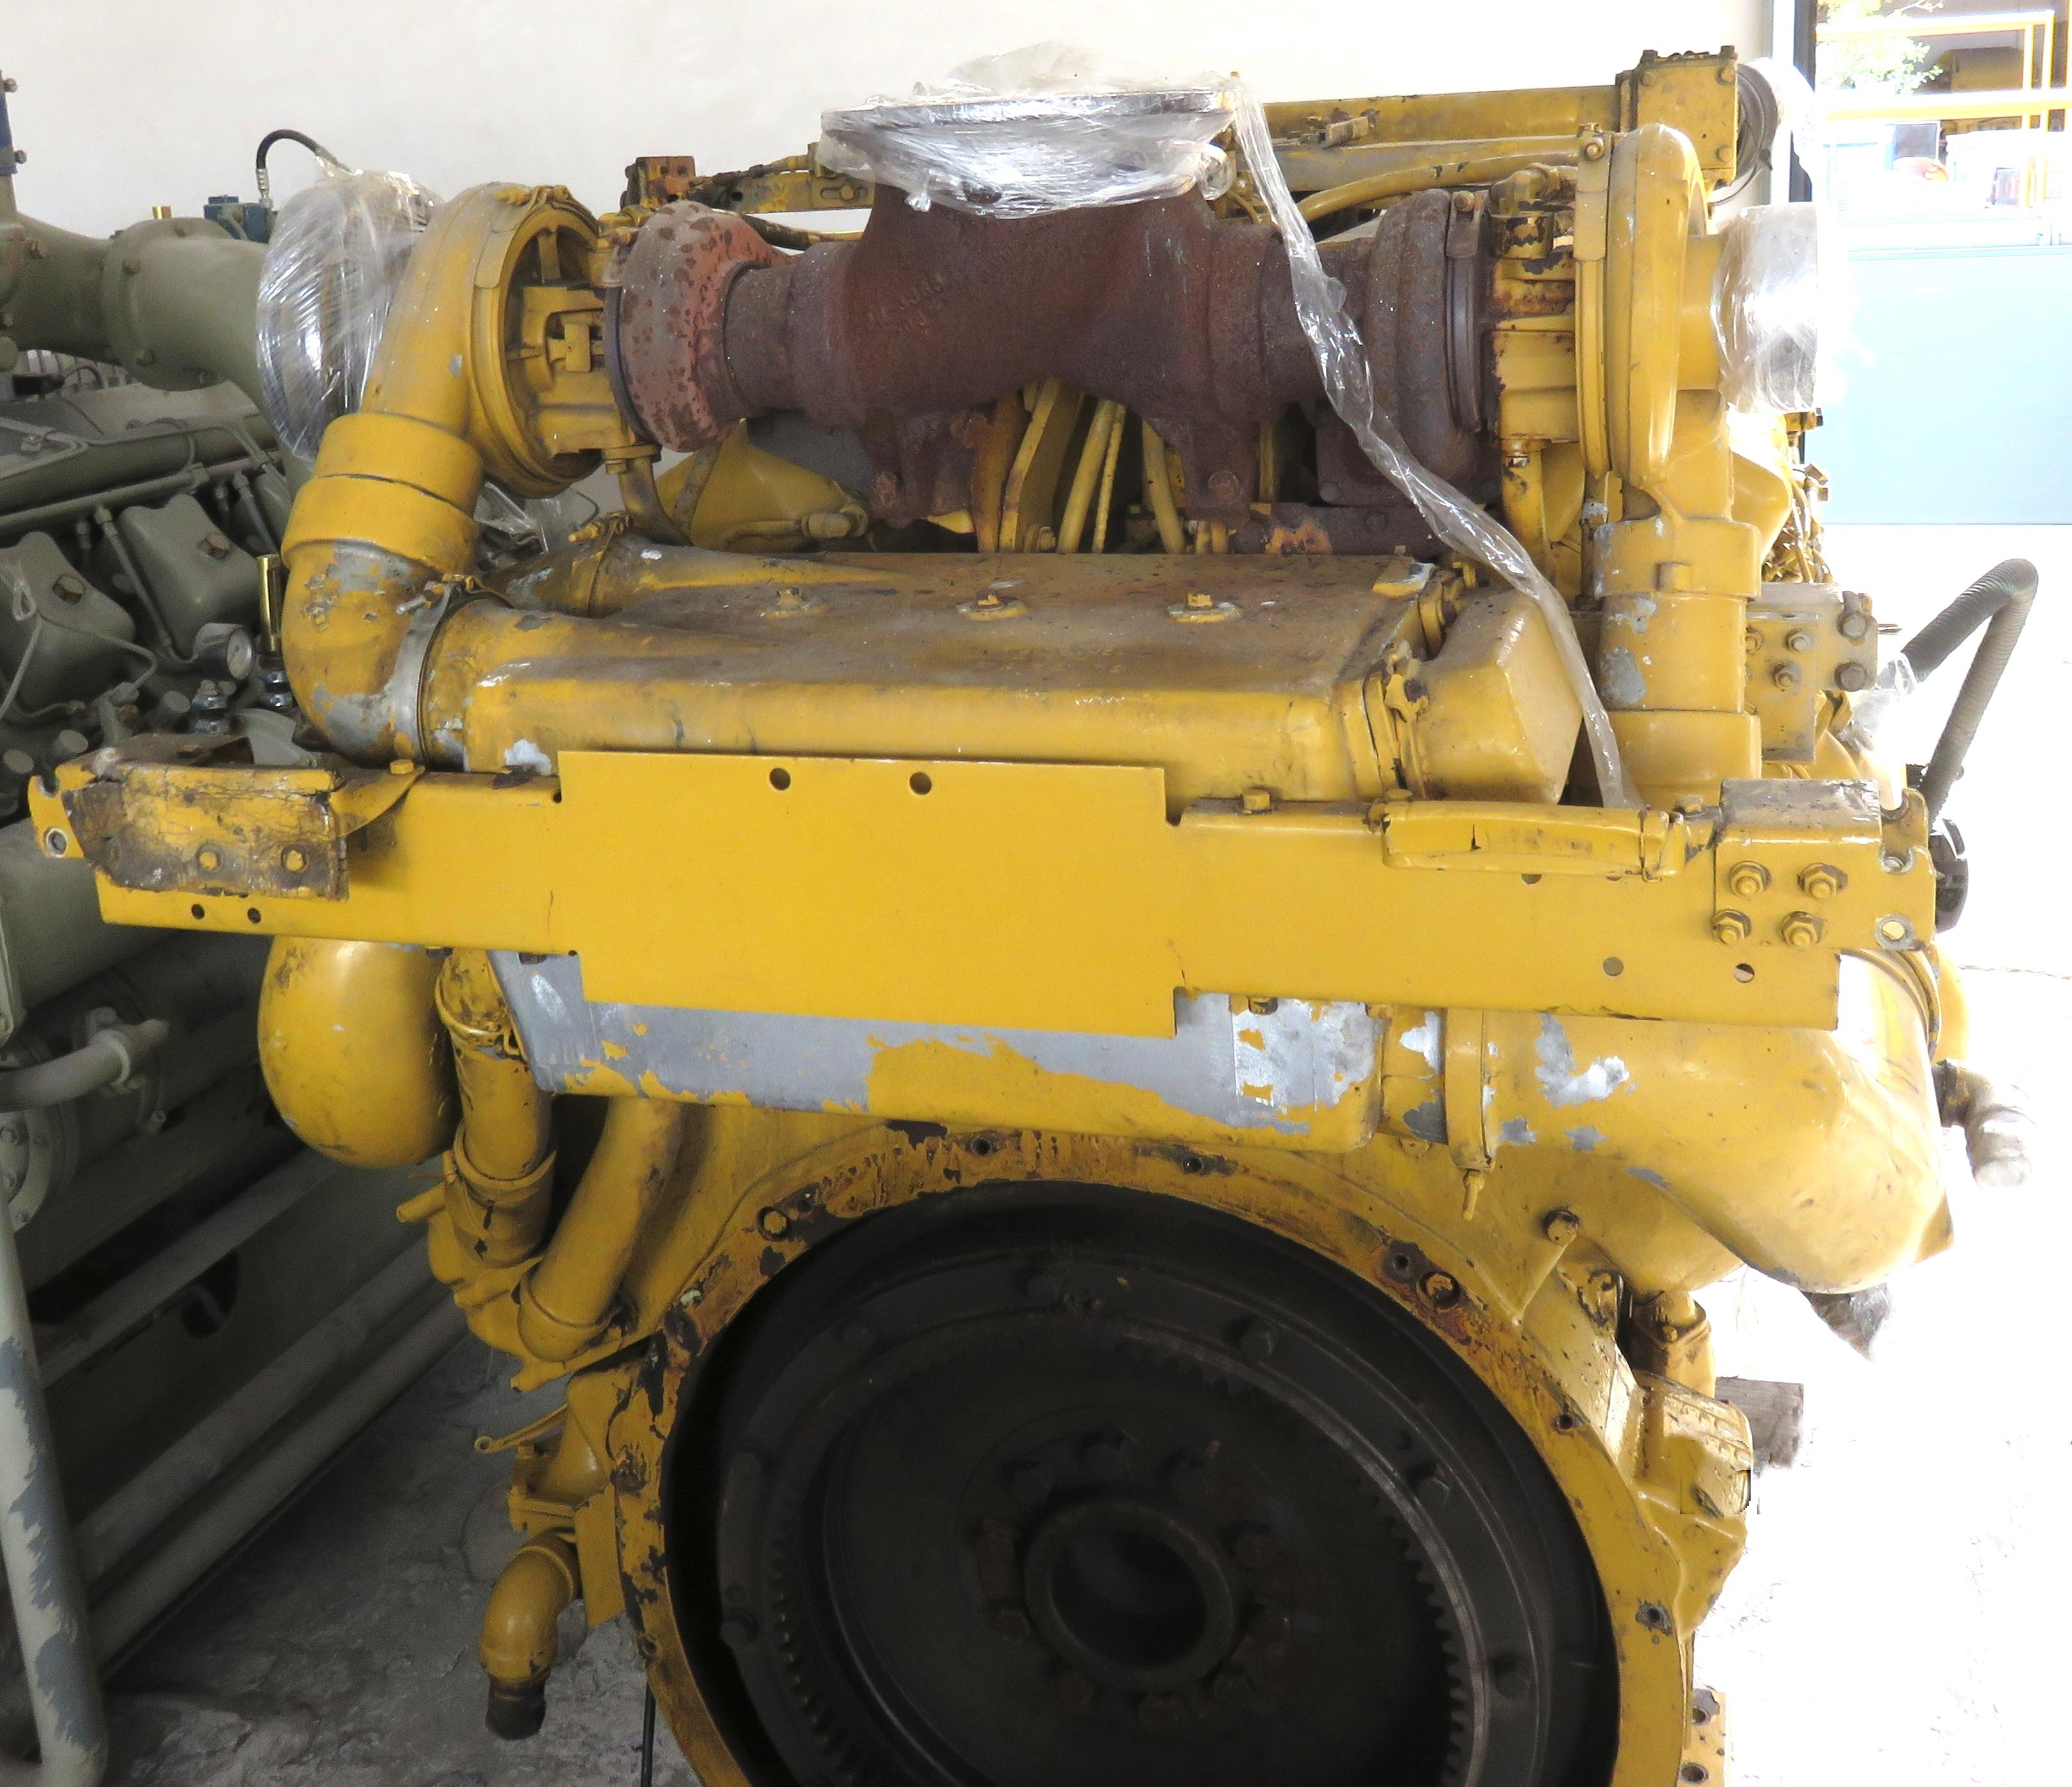 CAT D-379 engine rear view